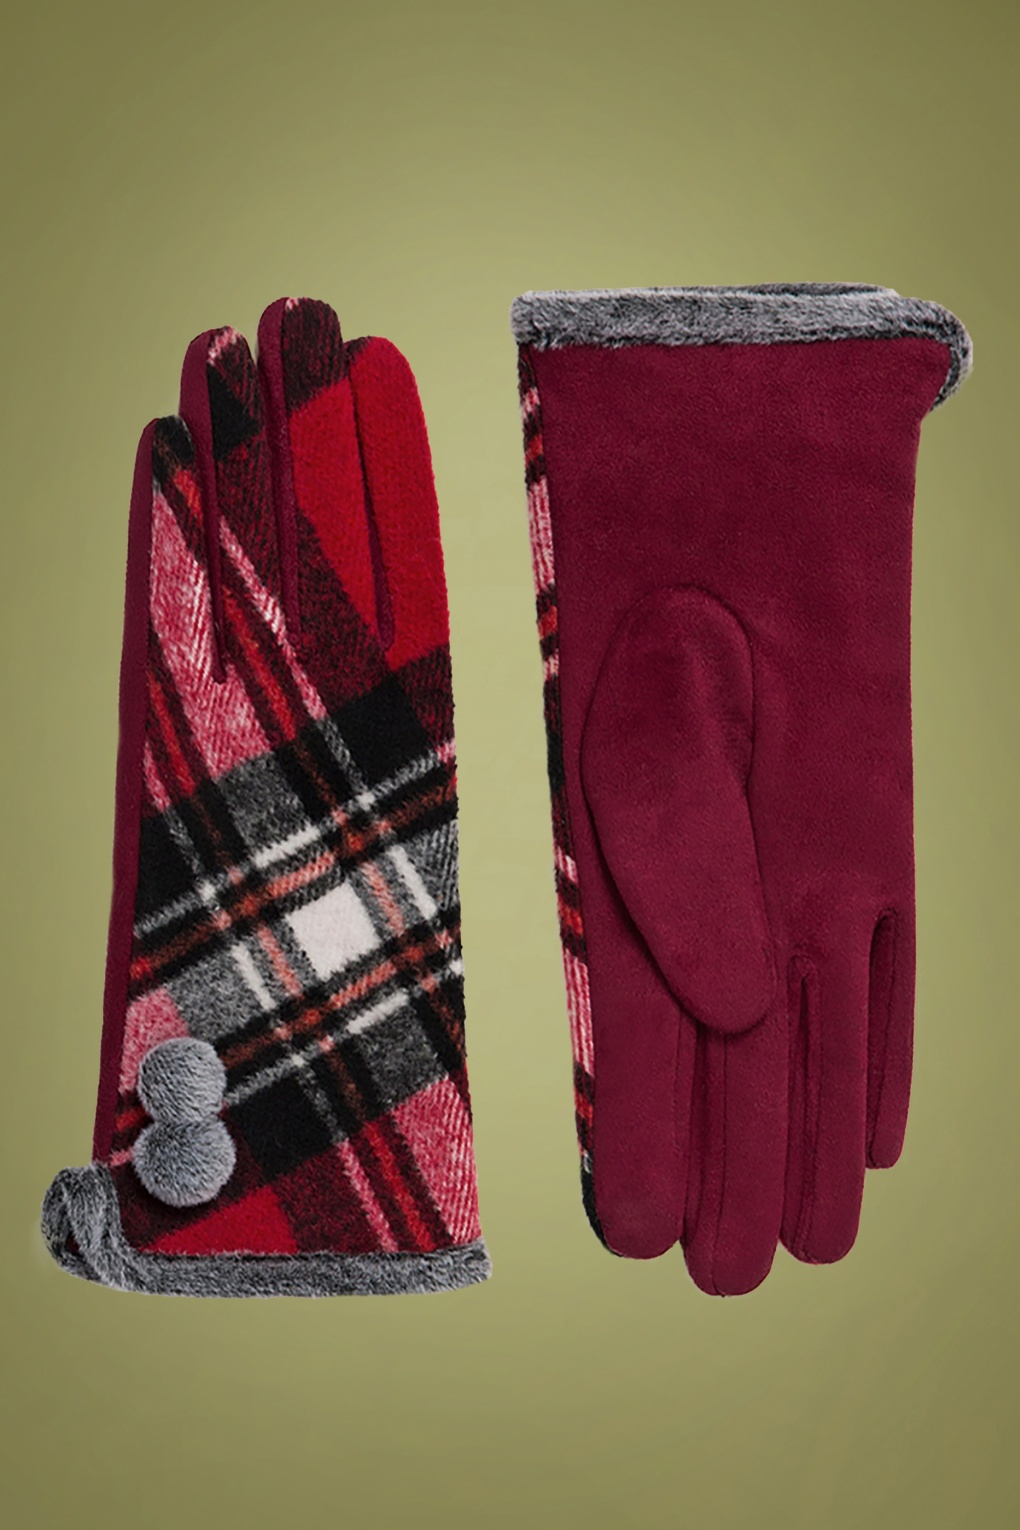 Vintage Style Gloves- Long, Wrist, Evening, Day, Leather, Lace 50s Bonnie Tartan Gloves in Red £16.12 AT vintagedancer.com